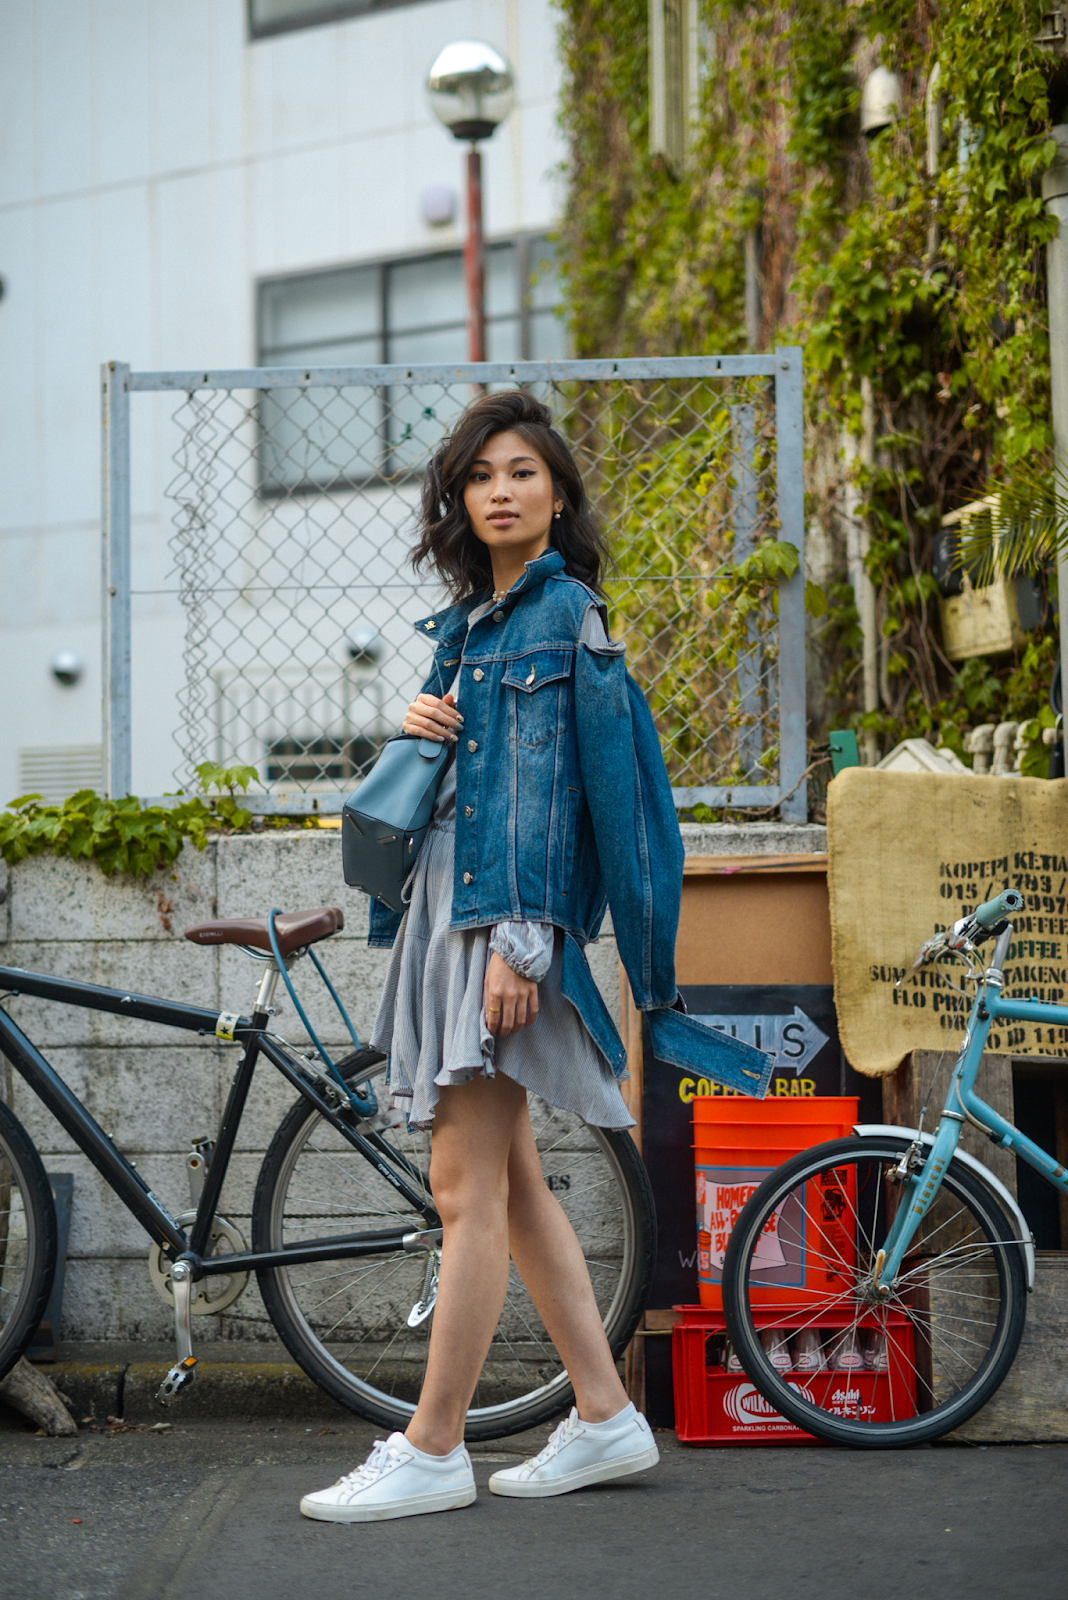 Tokyo coffee shops, PELLS coffee and bar, denim jacket and blue dress, Loewe puzzle bag, Tokyo style blogger, FOREVERVANNY